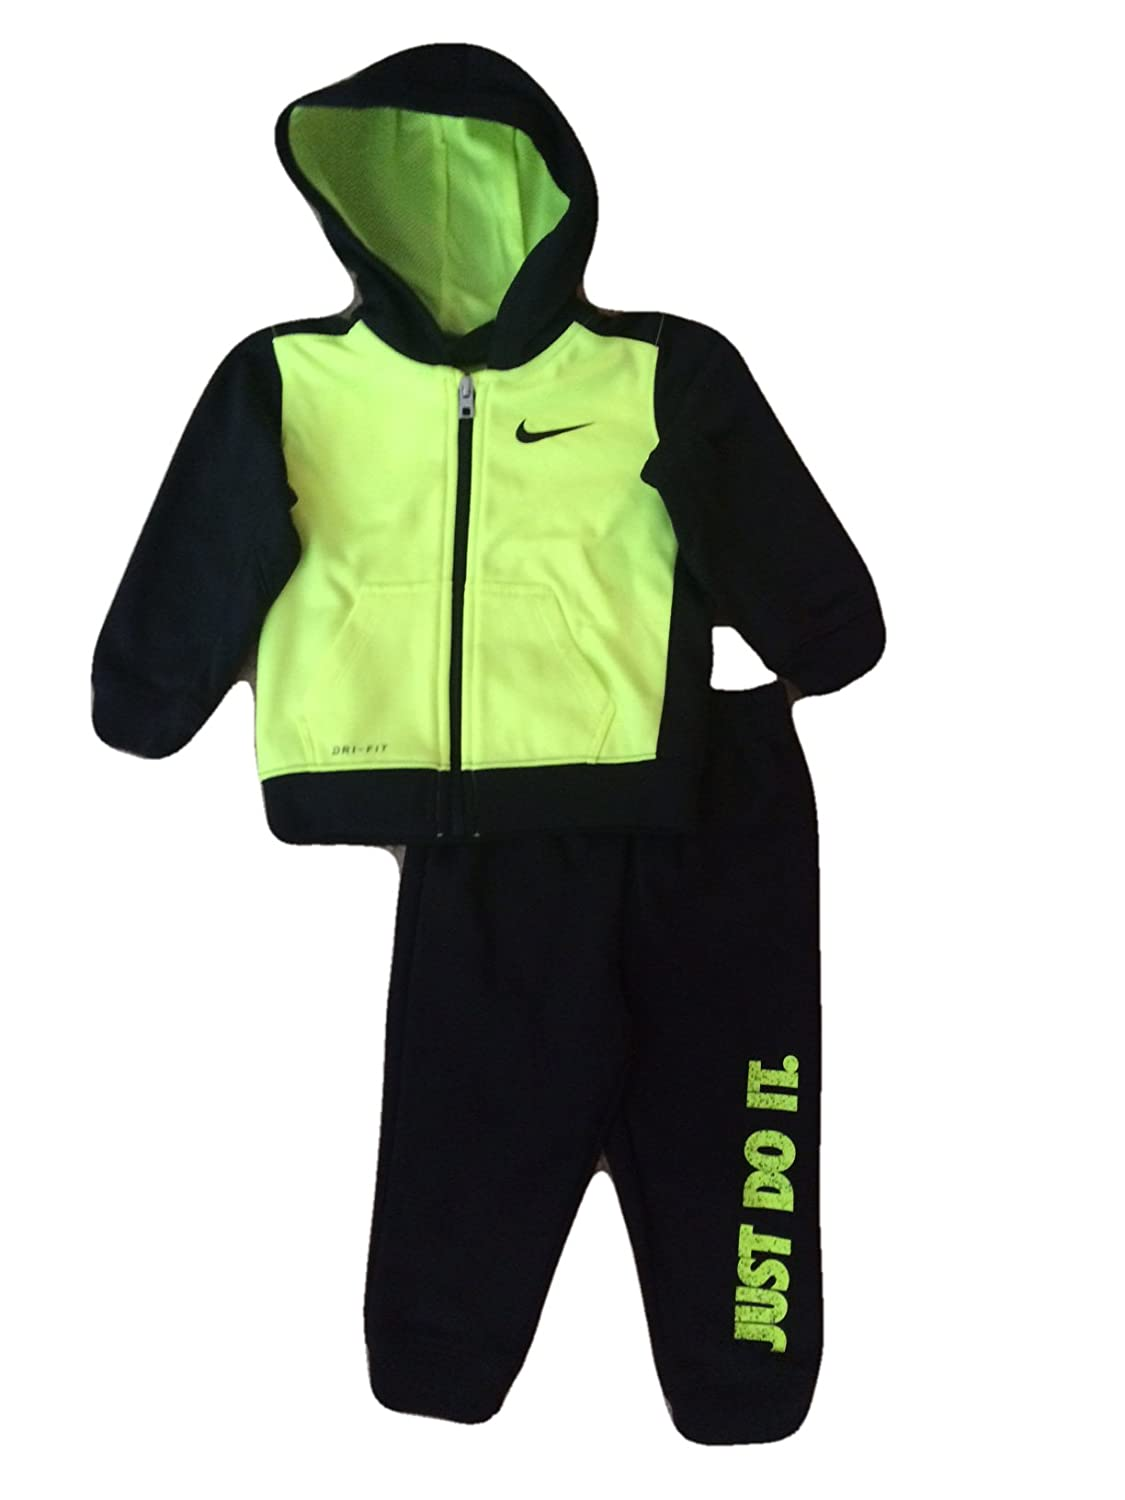 b79425592c00 This Nike baby sweatsuit is made of Nike Therma fabric which helps manage  the bodies natural heat. Made by Nike an eco-friendly member of the USA ...